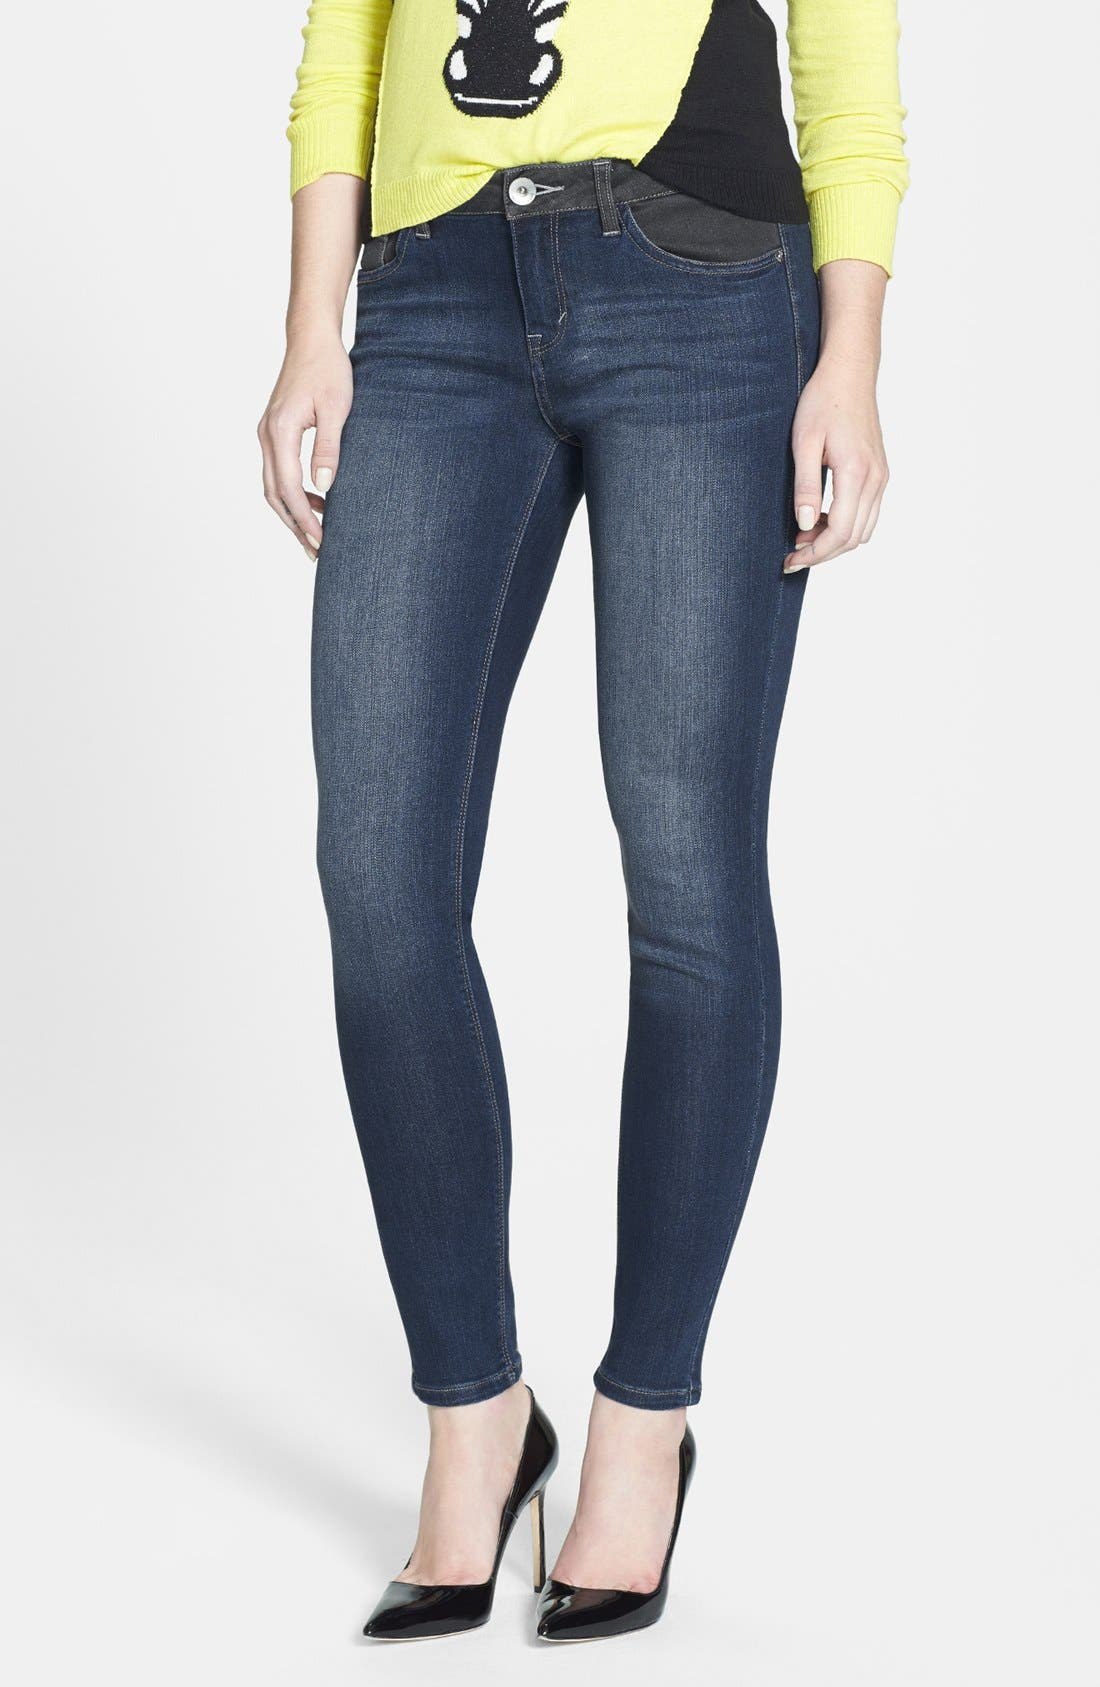 Main Image - kensie 'Ankle Biter' Colorblock Skinny Jeans (Electric Youth)